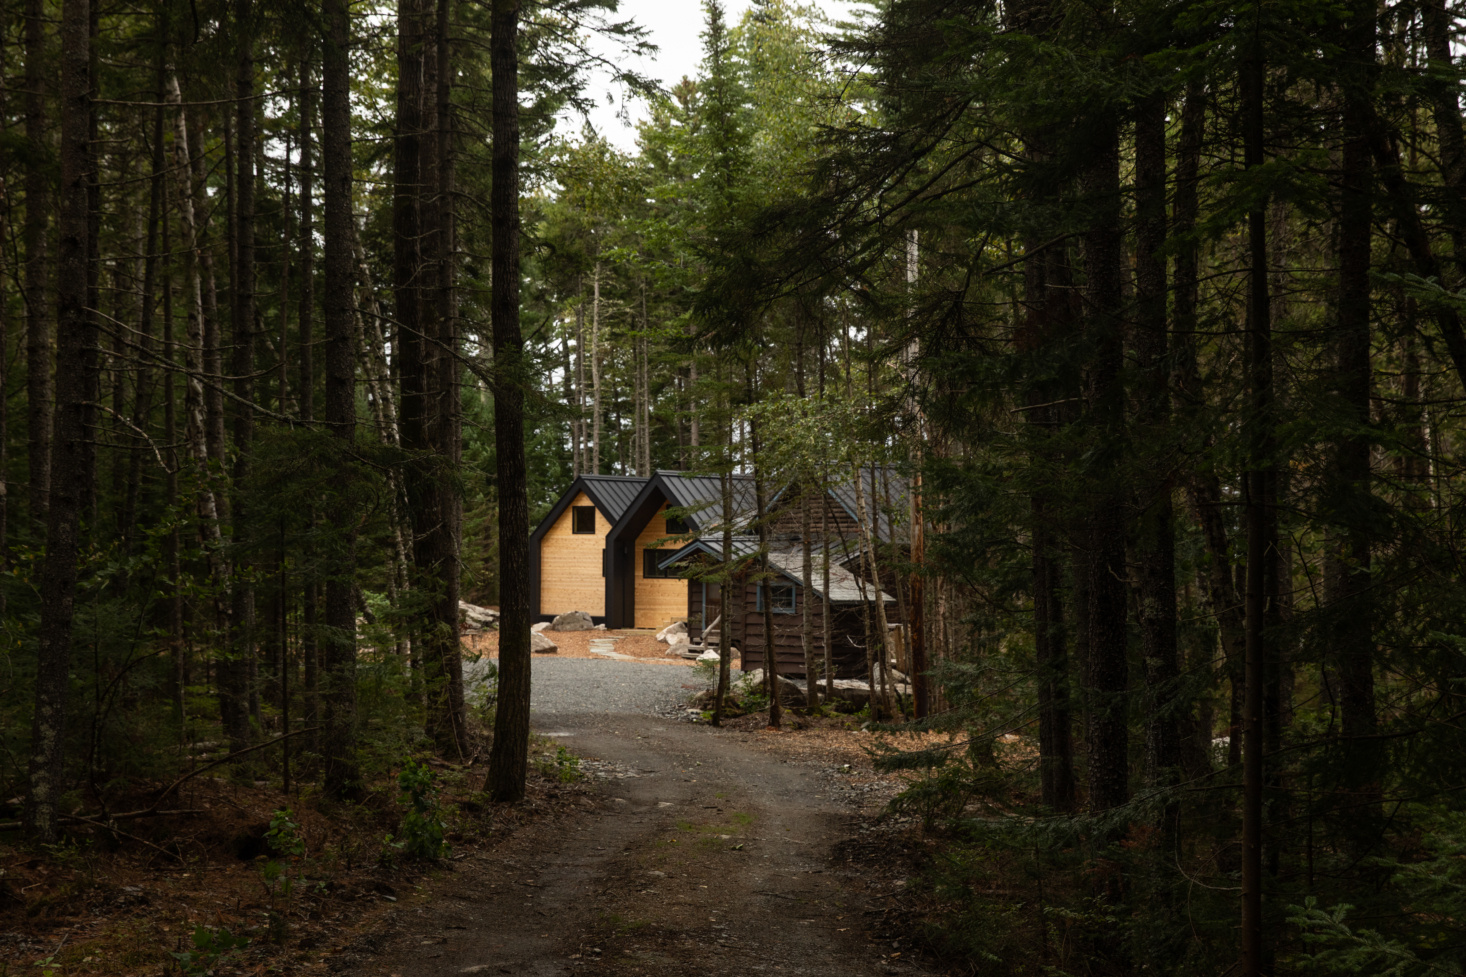 Rock Camp: Old-Meets-New Lake Cabins by an Upstart Maine Architect